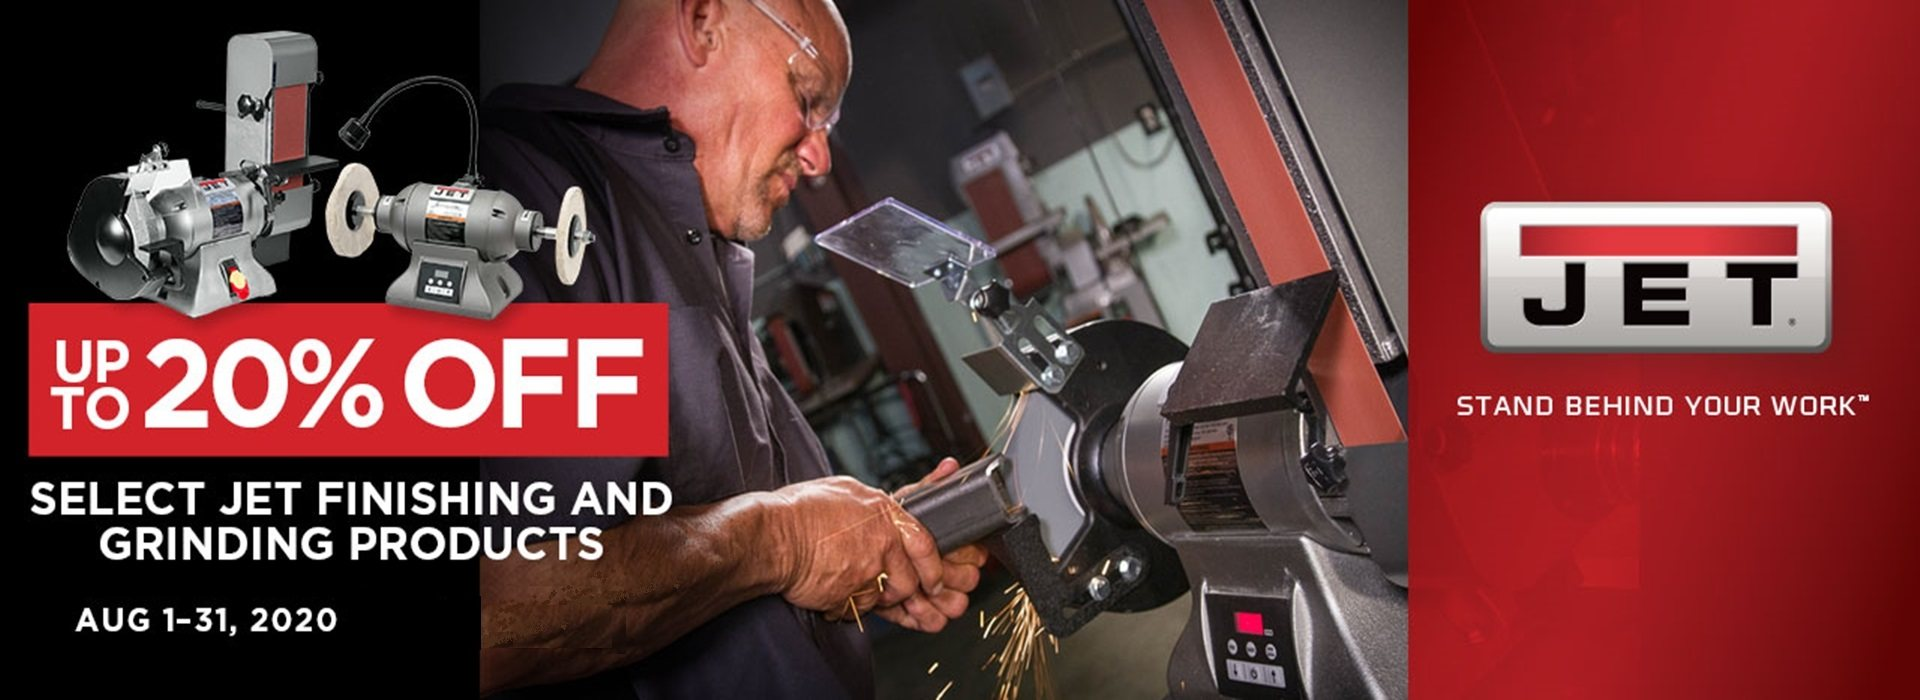 Jet Grinding & Finishing Sale August 2020